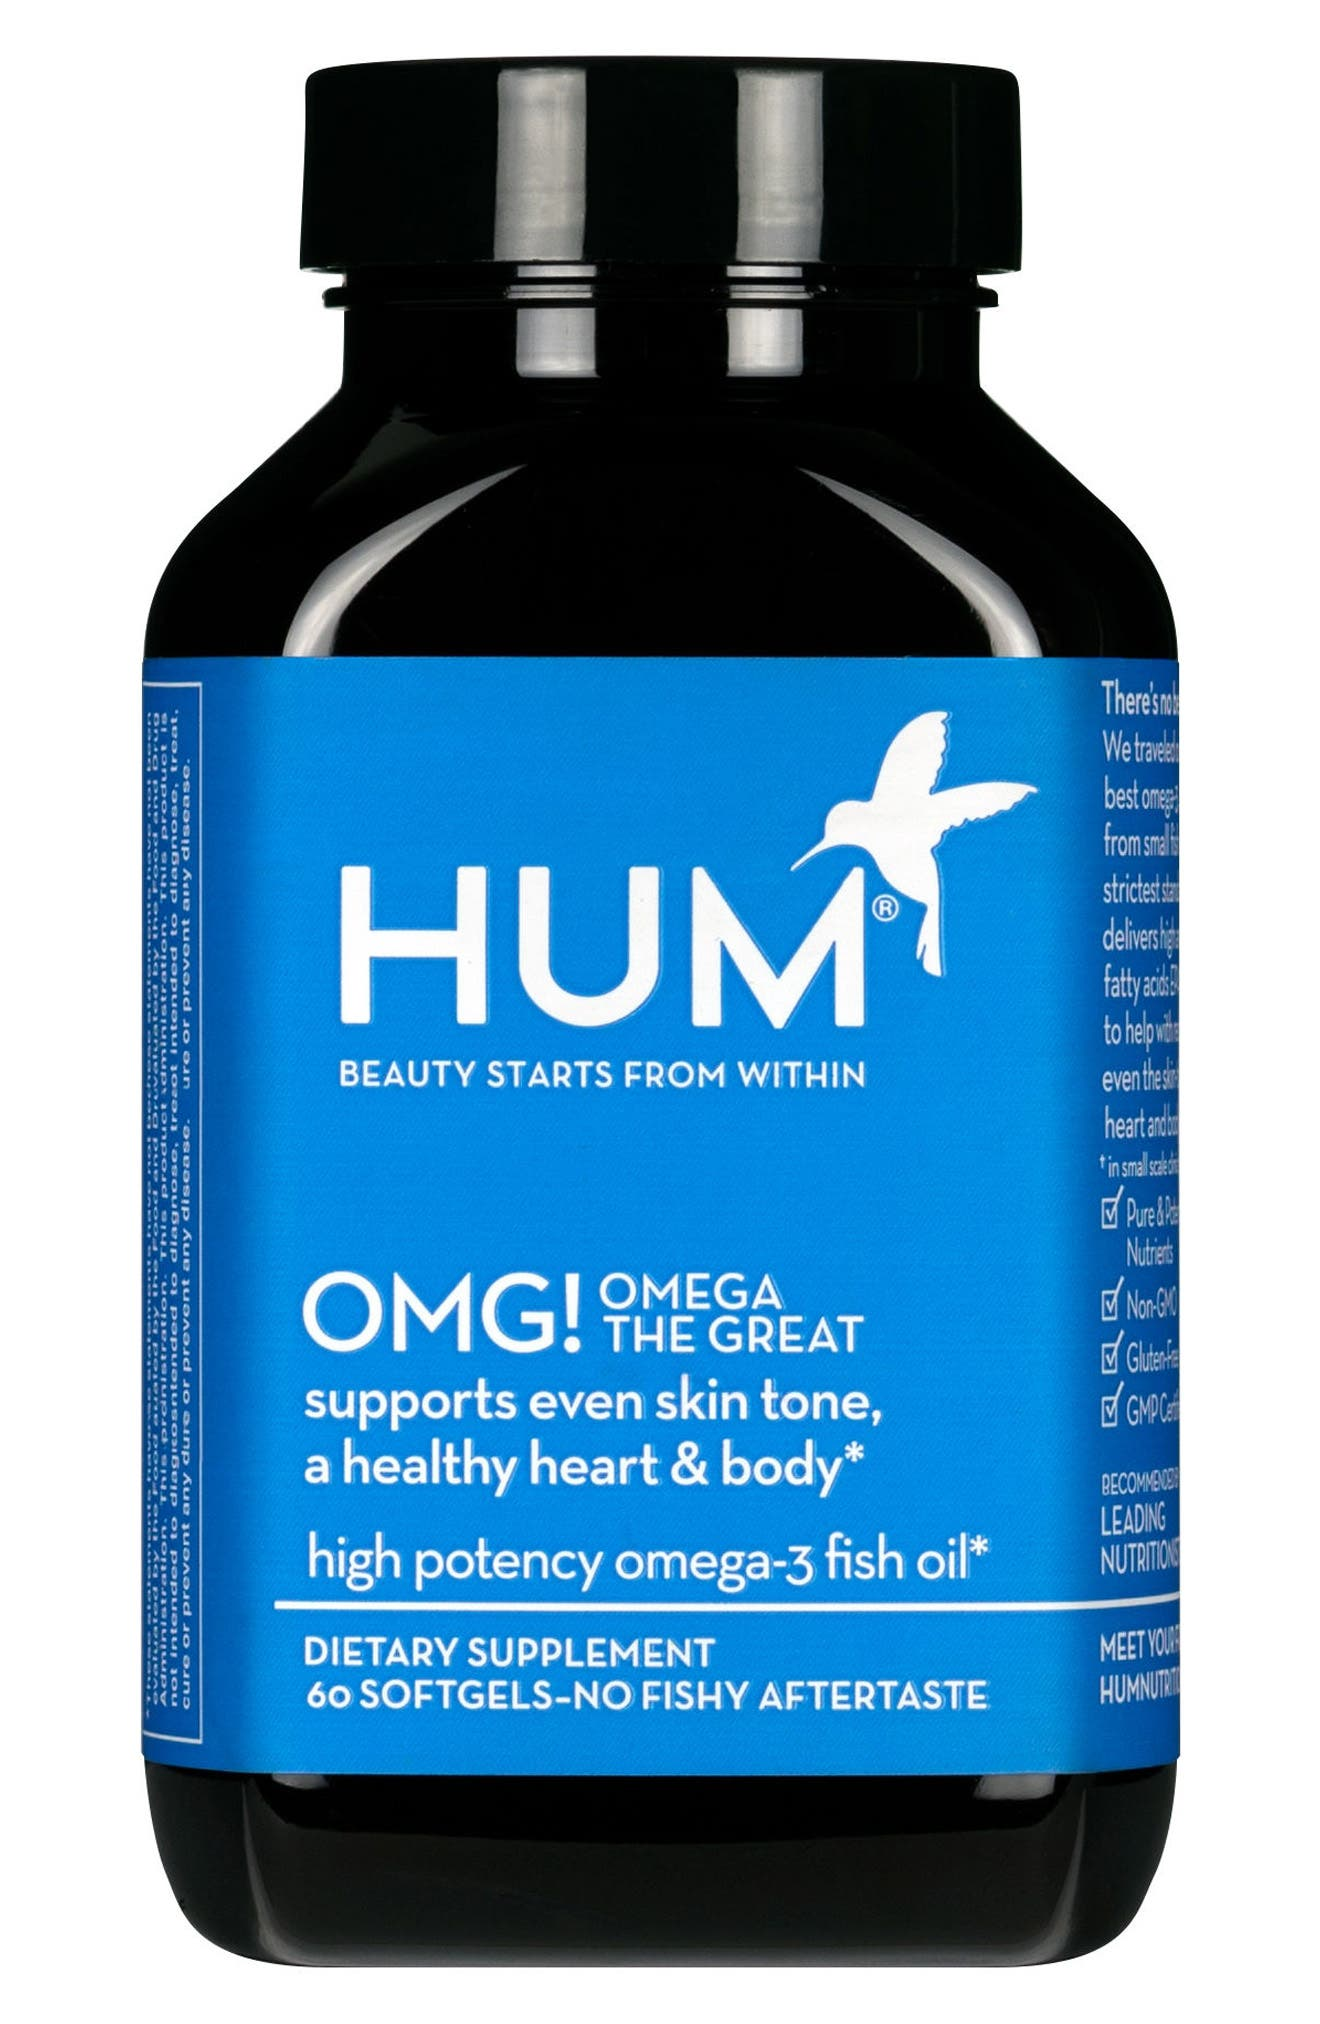 What it is: A fish oil capsule that supports even skin tone, a healthy heart and body, clear skin and hydration. What it does: All fish oils are not created equal, and Hum Nutrition went through some serious trouble to bring you the best fish oil in OMG! Omega the Great. This formula is sustainably sourced from small fish like sardines, mackerels and anchovies, surpassing the strictest purity standards. The omega-3s come in the highest form and